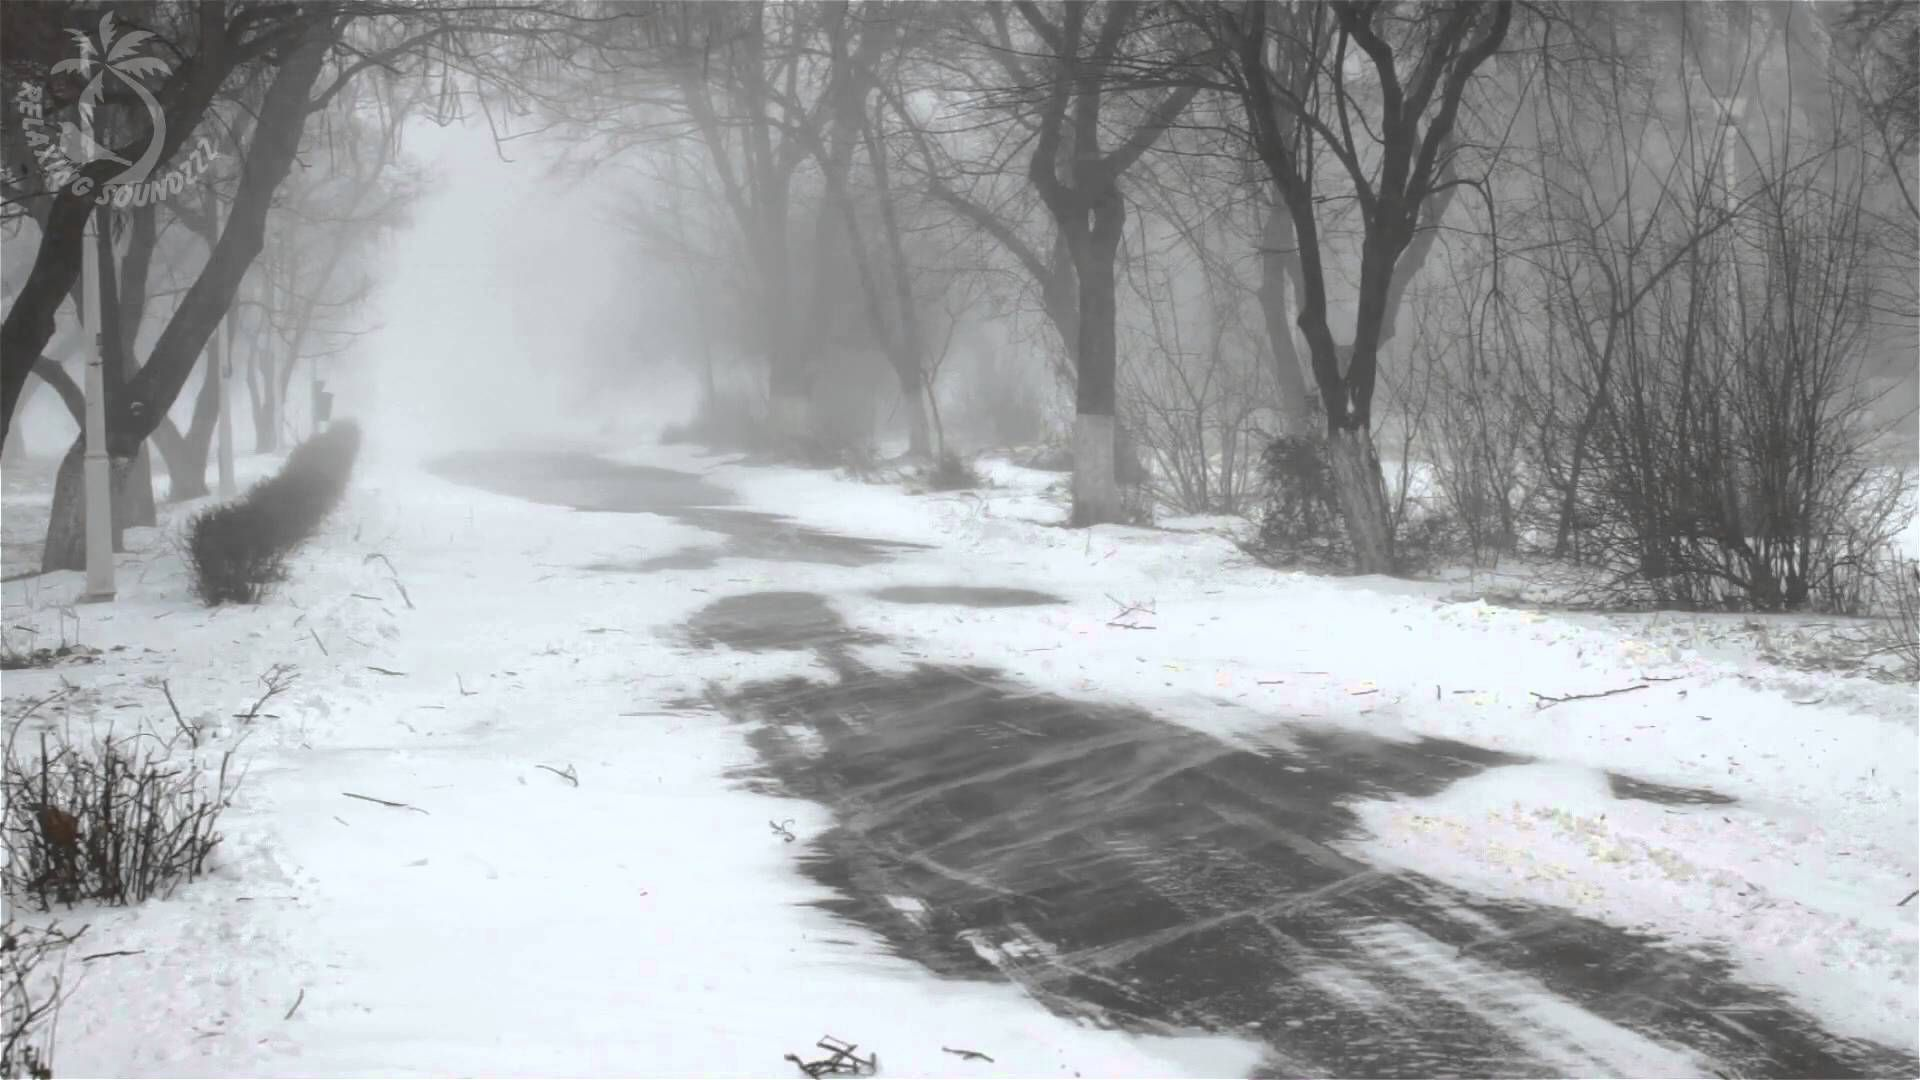 Winter Storm Sound - 8 Hours Of Ambient Snowstorm, Blizzard Sounds, Heavy Wind For Relaxation. Use this to tune out the snoring! This will help you relax and...